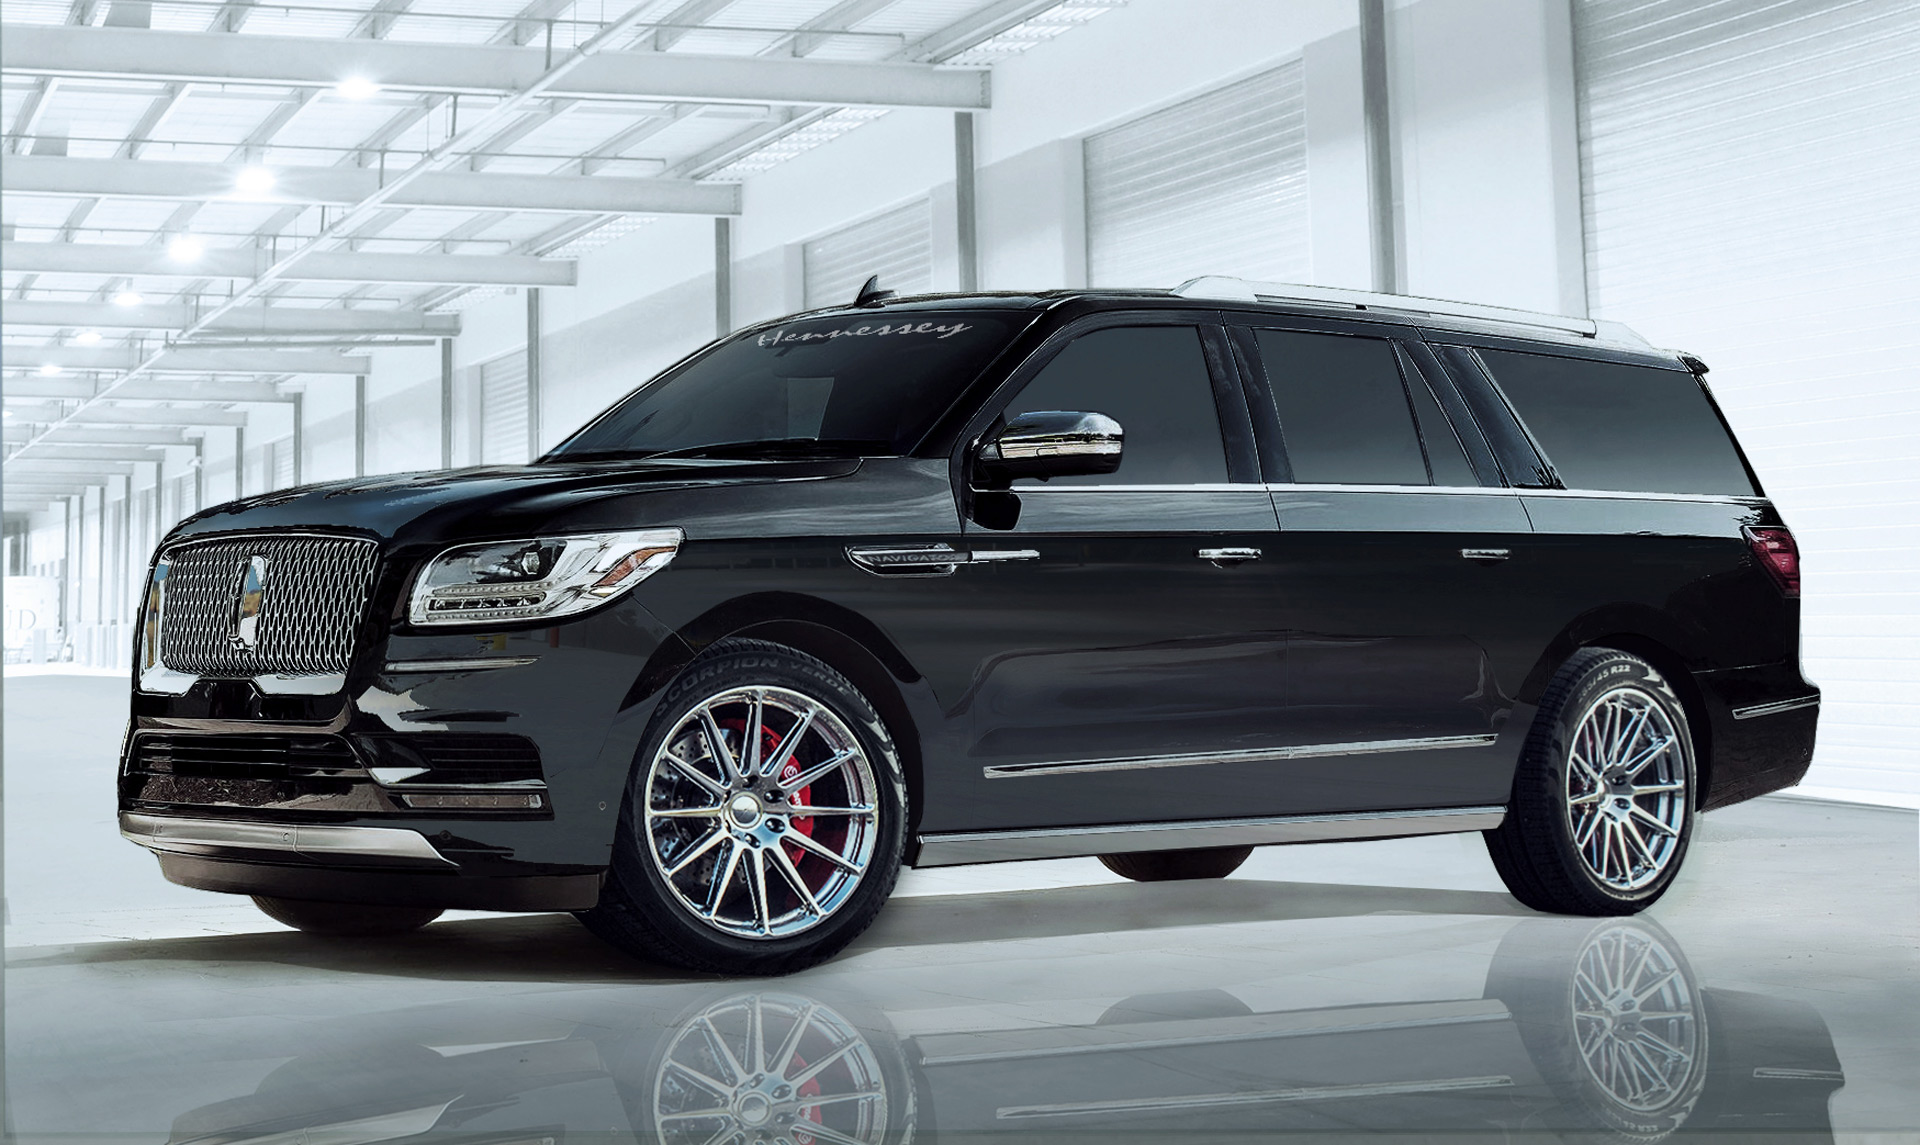 Hennessey's 600-hp Lincoln Navigator has arrived